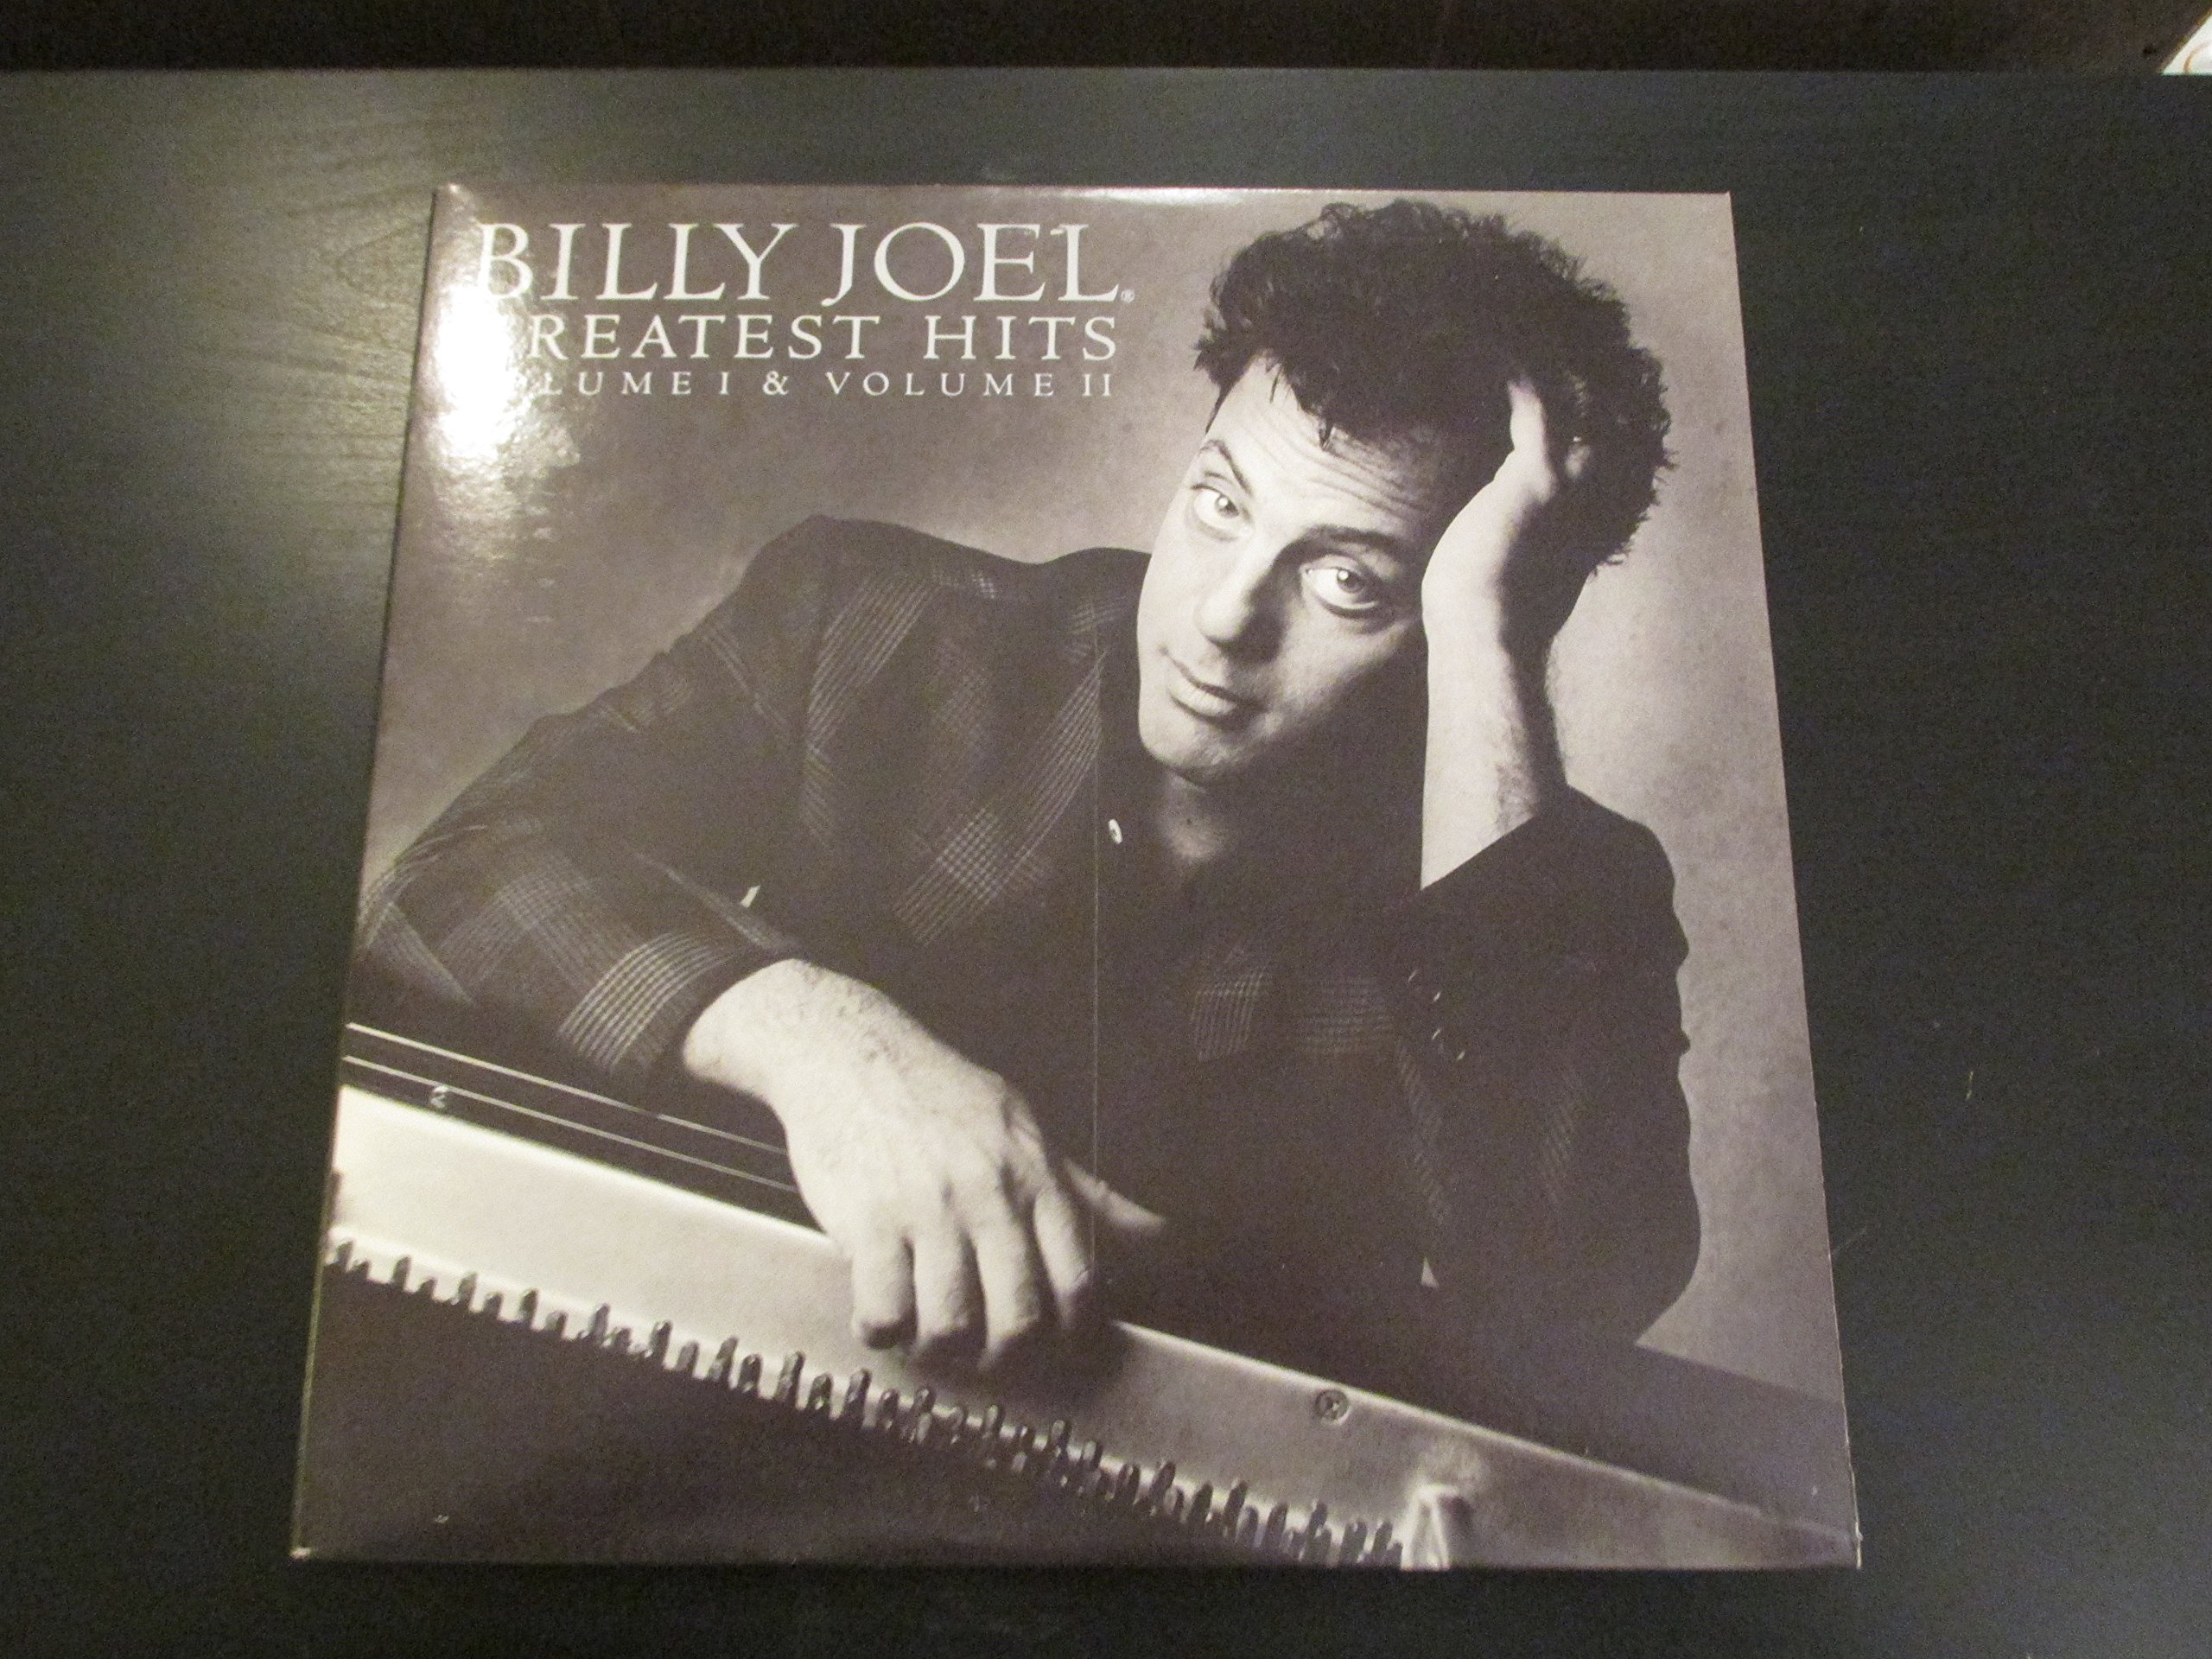 Billy Joel Greatest Hits, Volume 1 & 2 by CBS